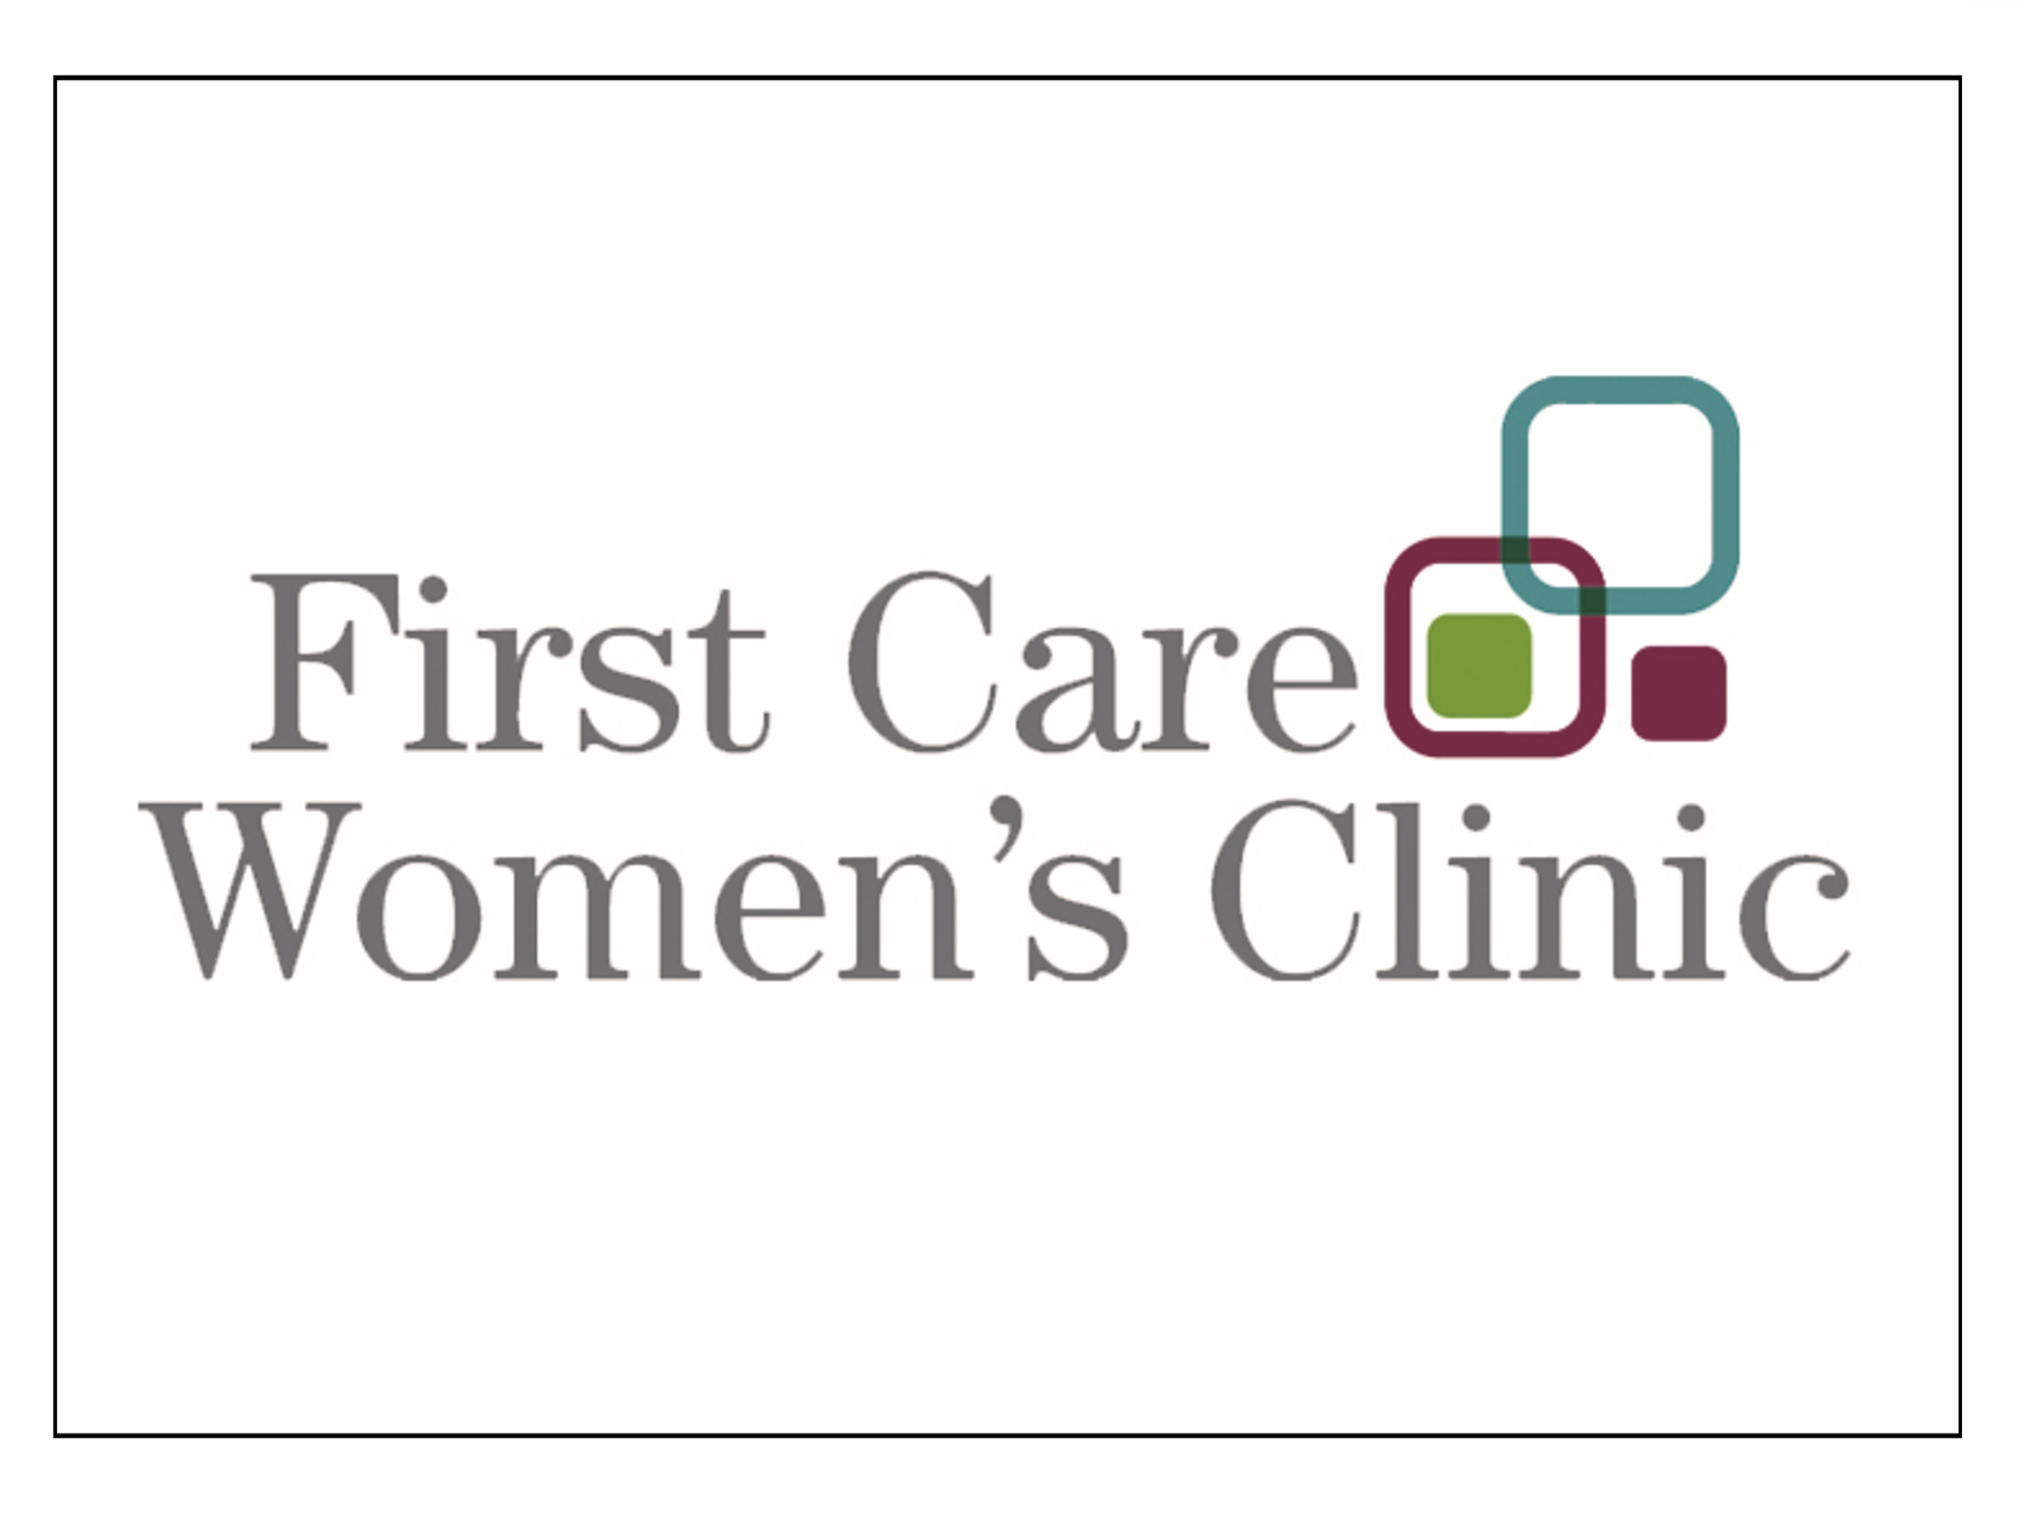 First Care Women's Clinic Logo Border